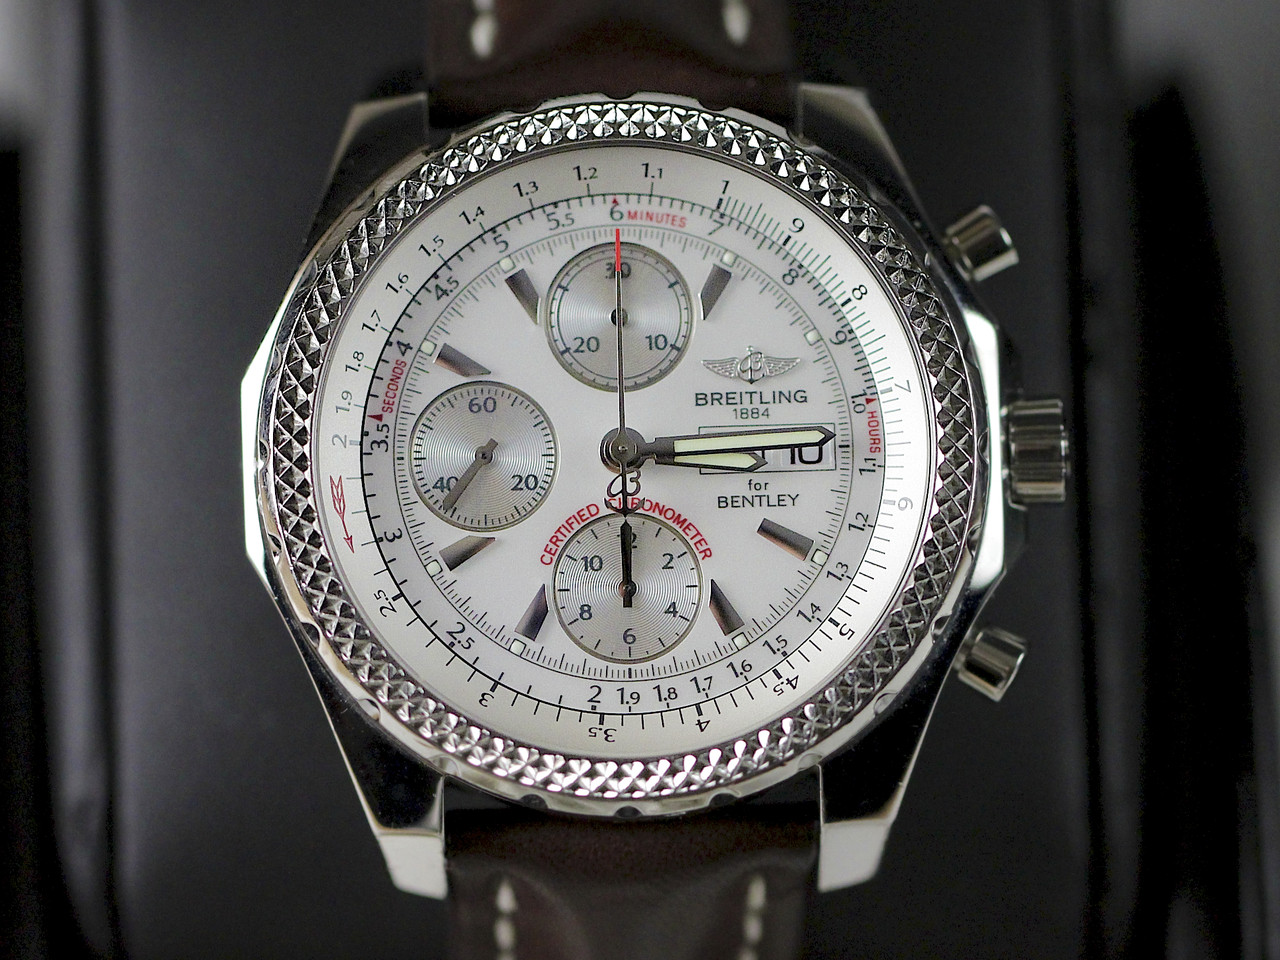 Dial Close-Up - For sale pre-owned Breitling Watch - Breitling for Bentley GT A13362 available online www.Legendoftime.com and in store Chicago Watch Center